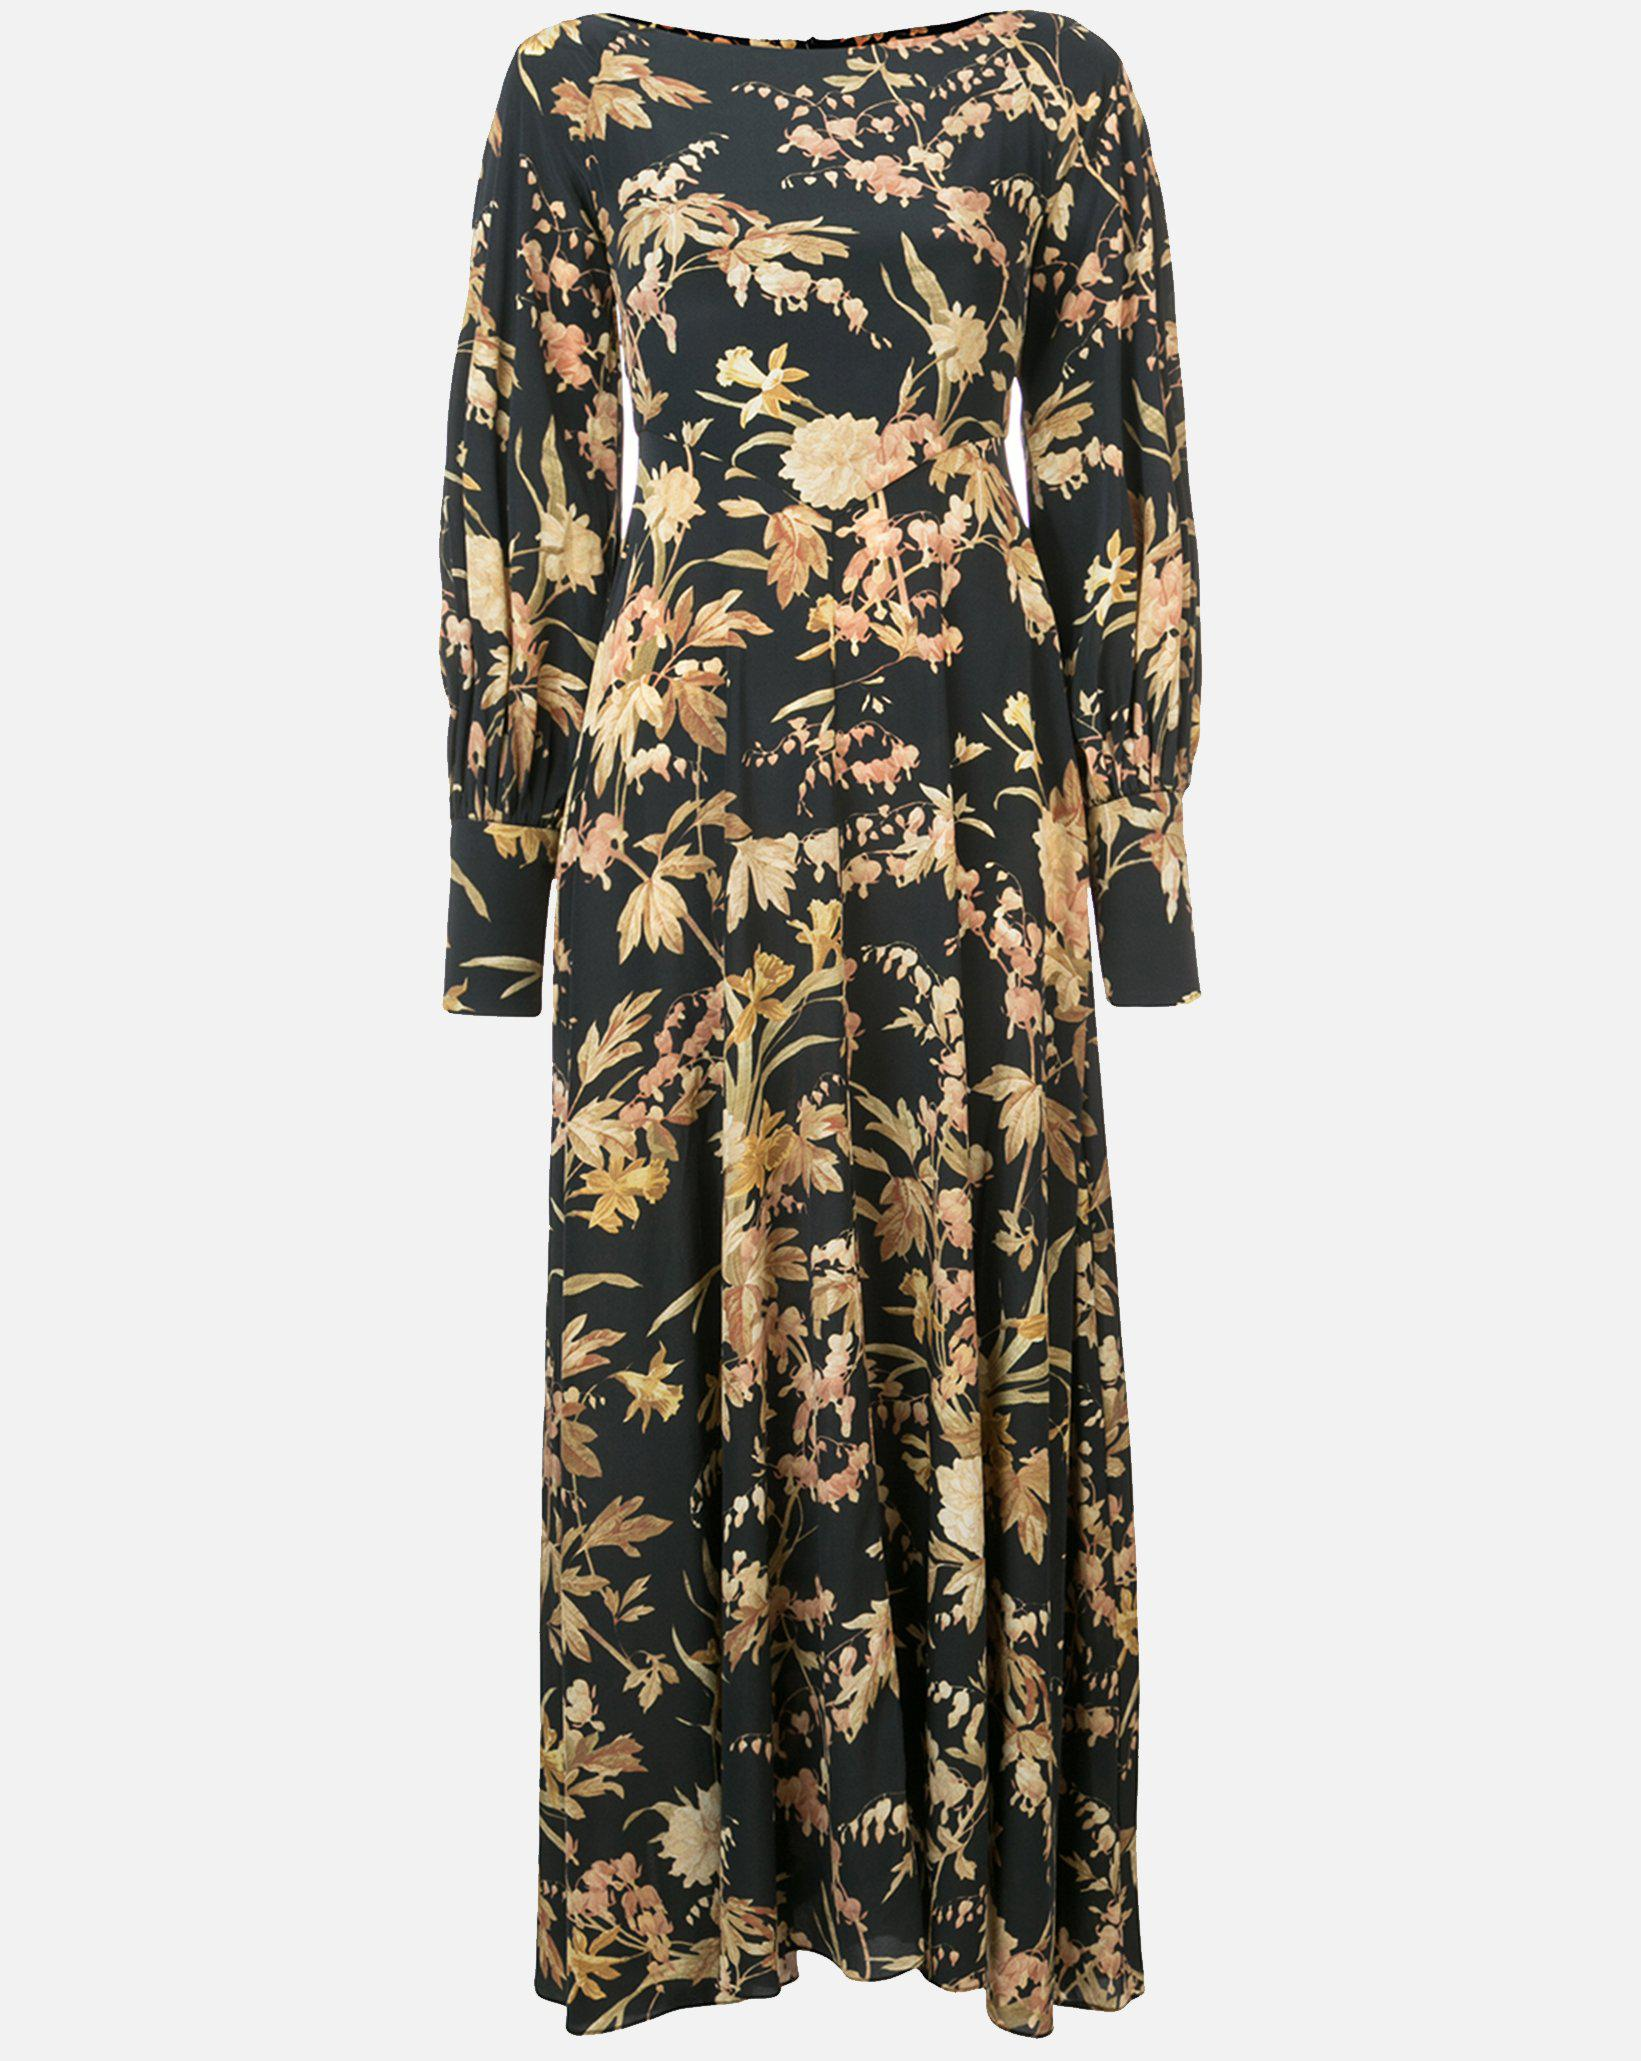 e05f35c1bbcd7 Women's Unbridled Basque Dress In Black Jonquil Floral